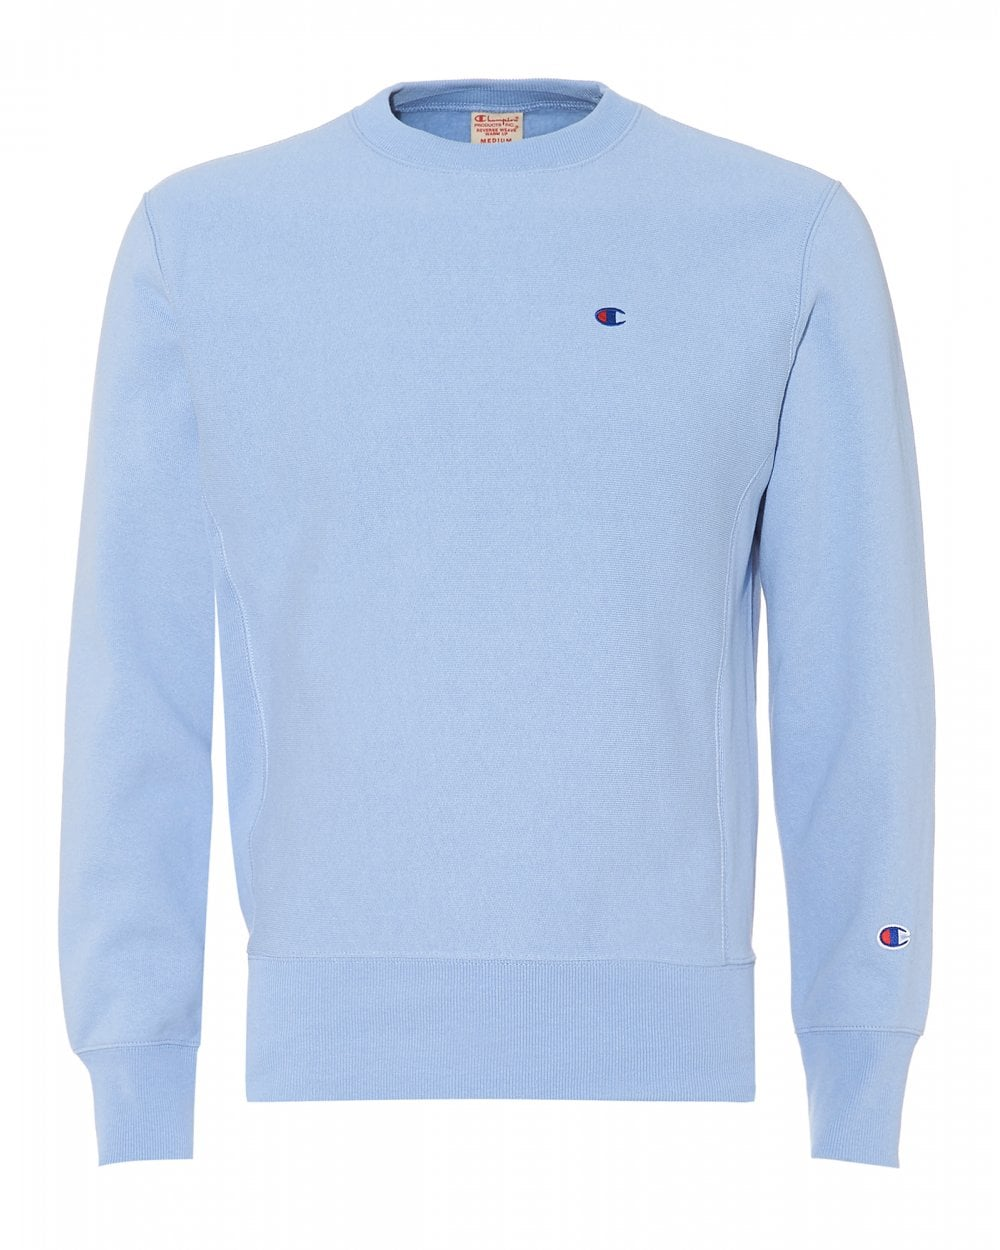 8a5162829076 Champion Mens Small Logo Sweatshirt